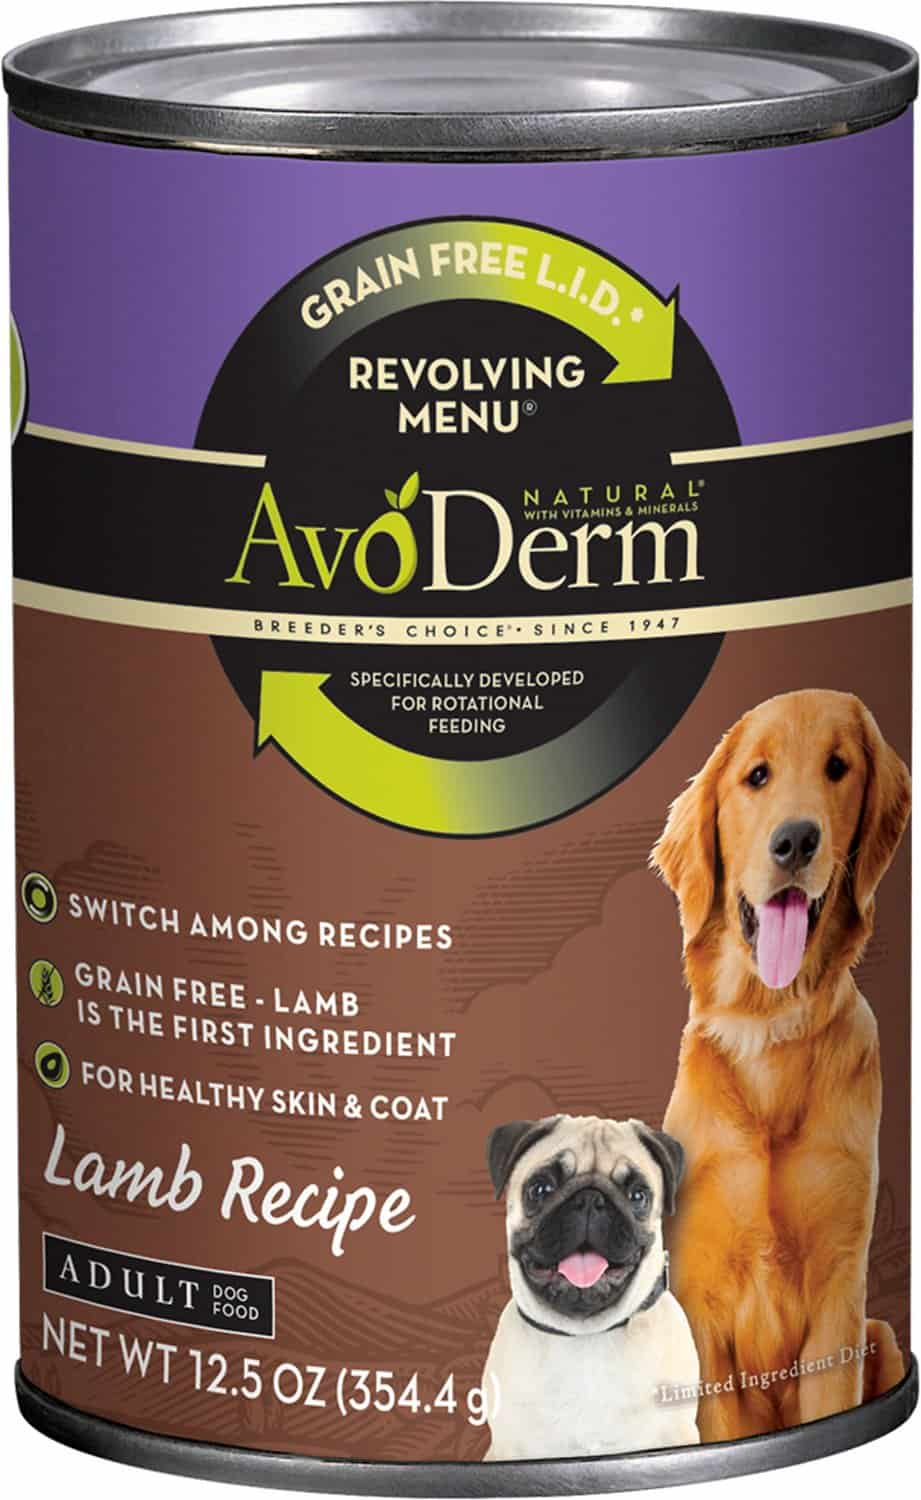 Avoderm Dog Food Review 2021: Is Avocado Best for Dogs? 19